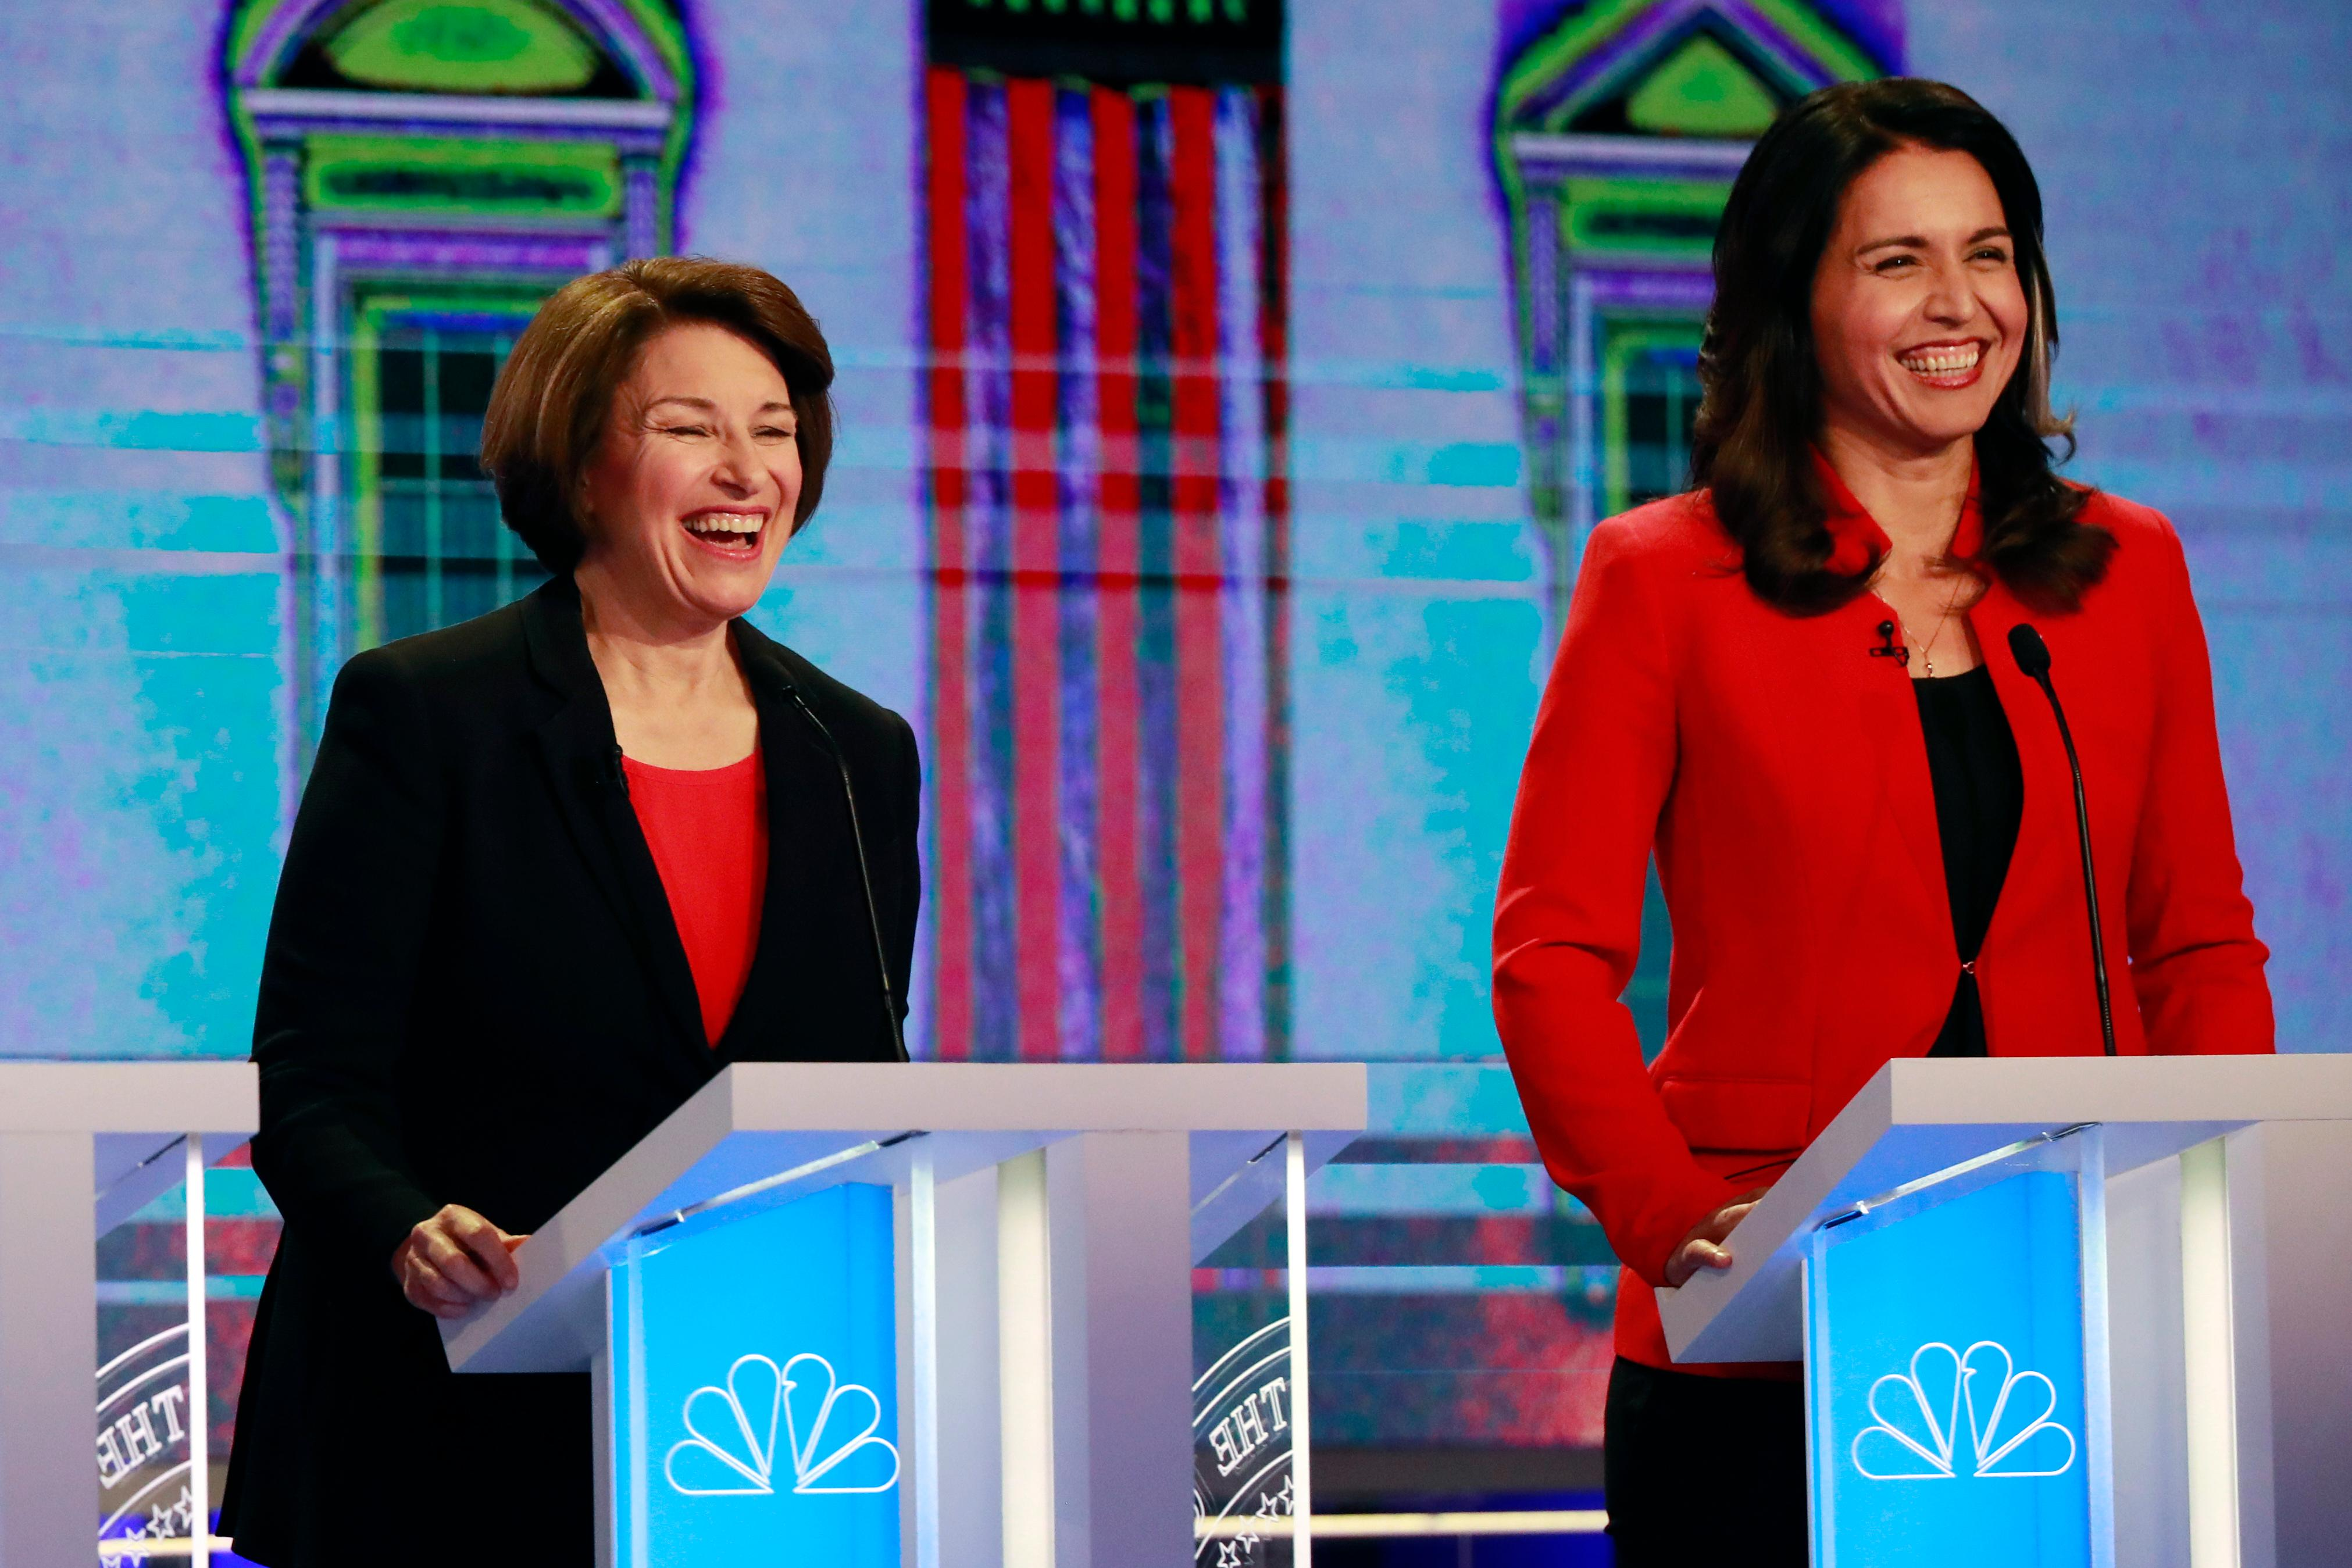 First Debate Dems Rail Against Economy For The Rich